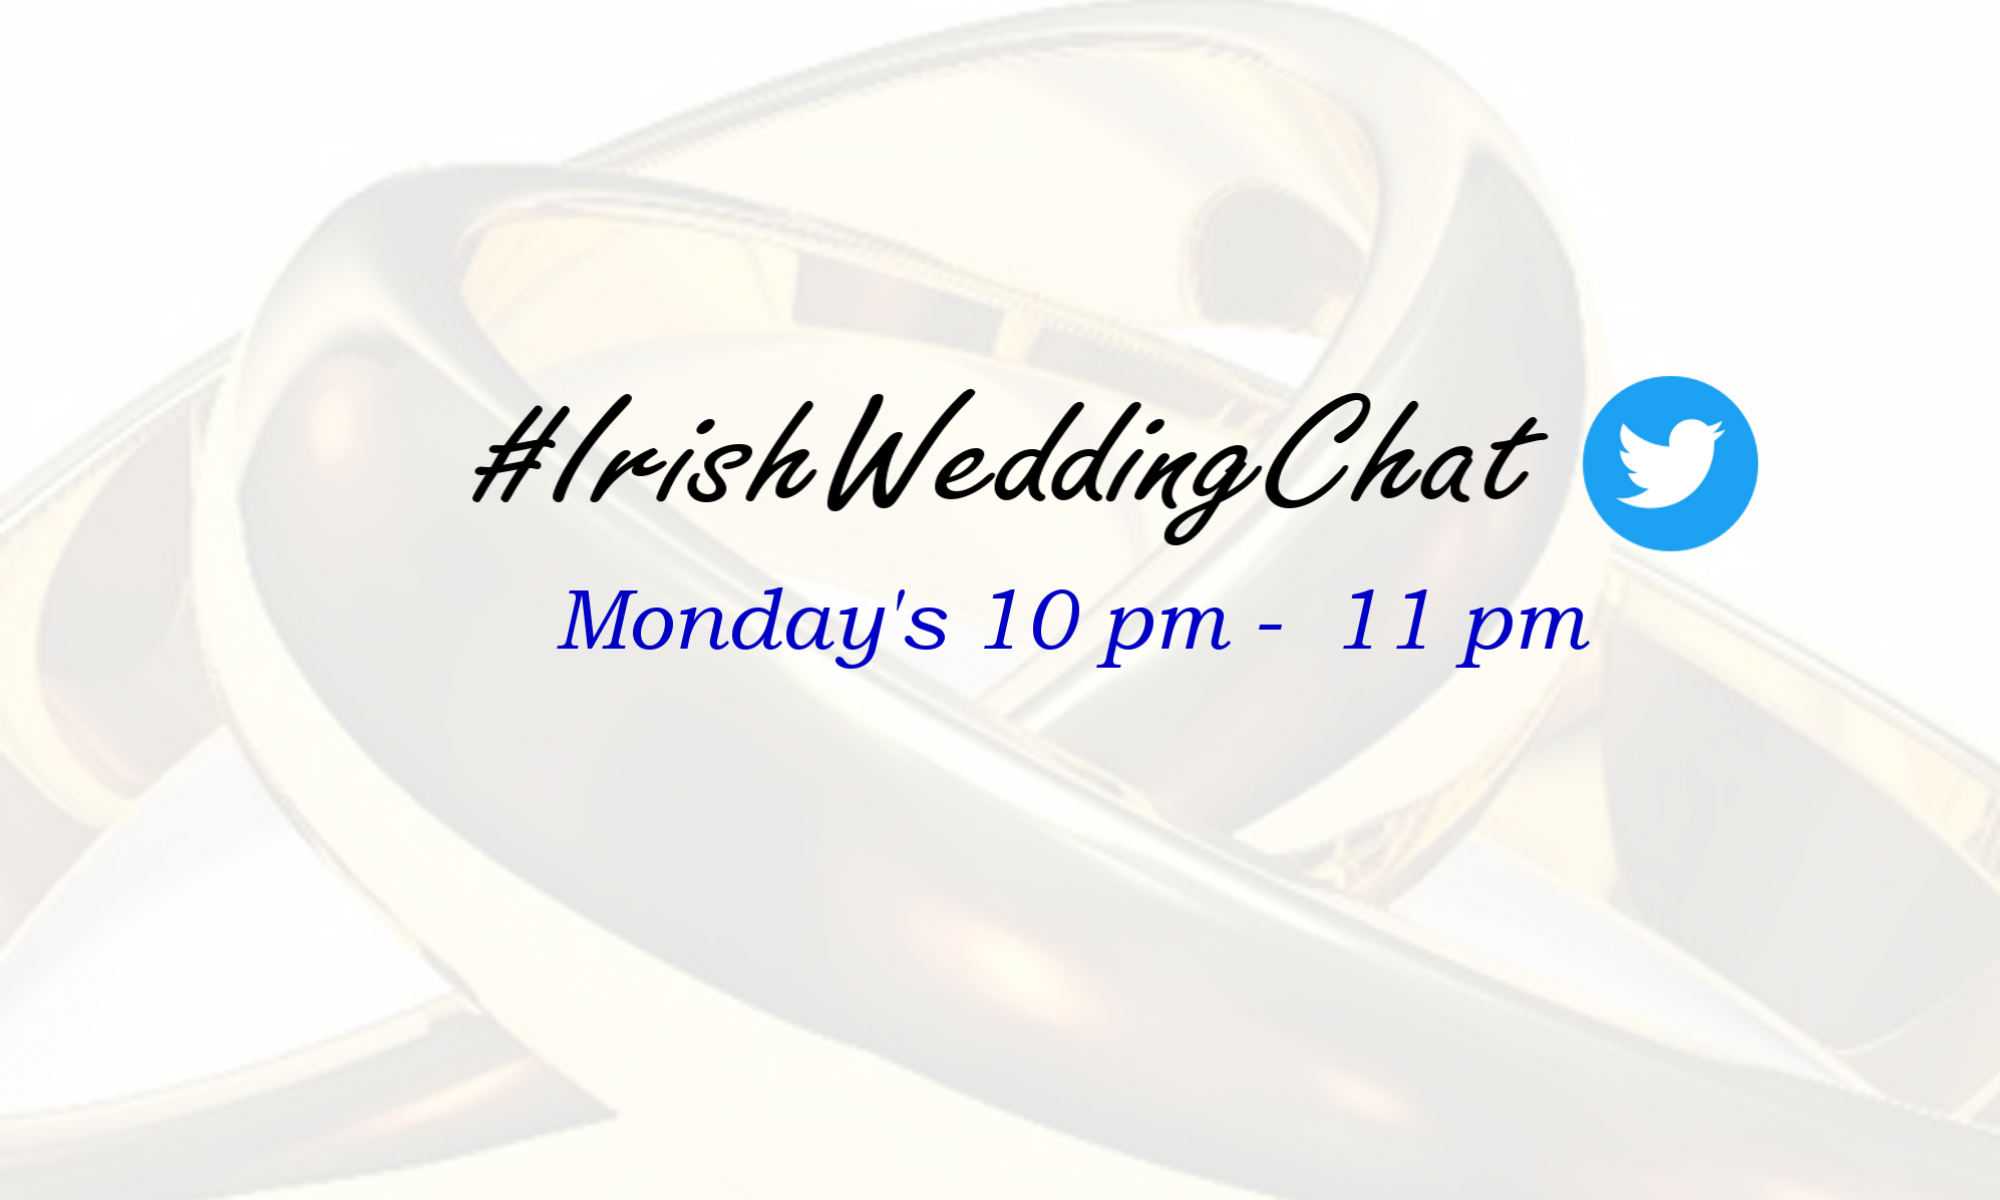 #irishweddingchat